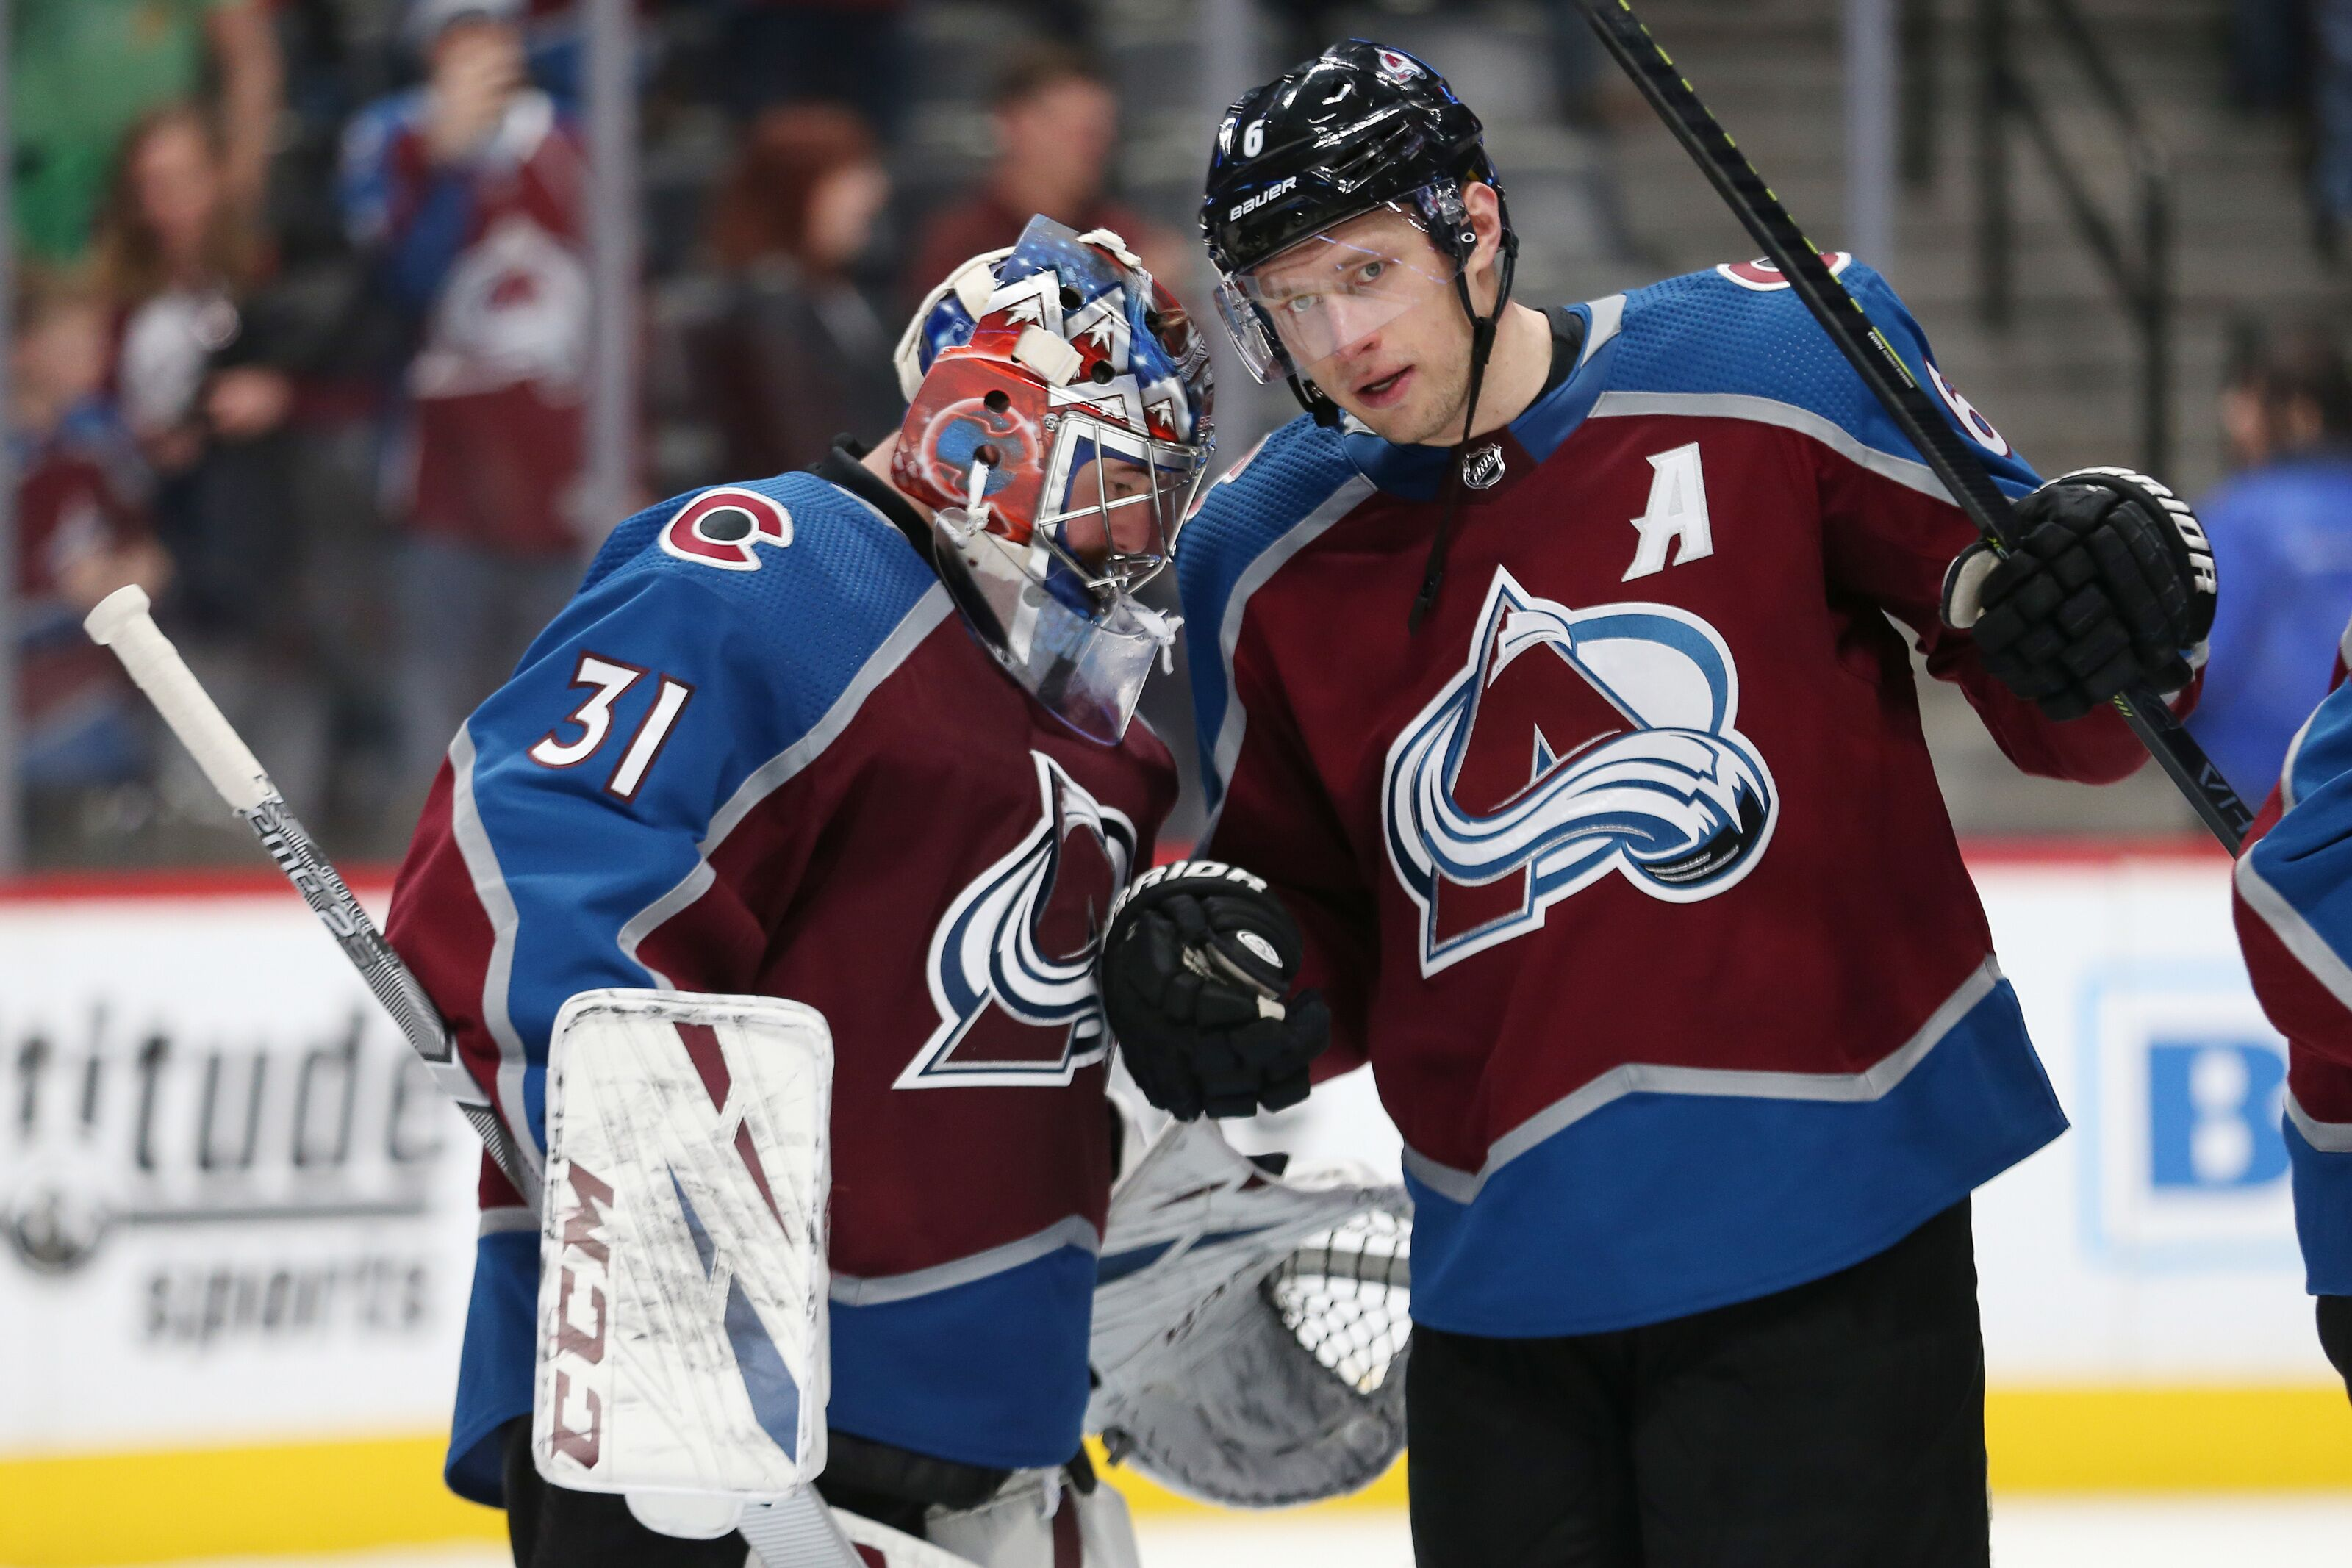 Colorado Avalanche: Best Tweets about Erik Johnson and his Horses